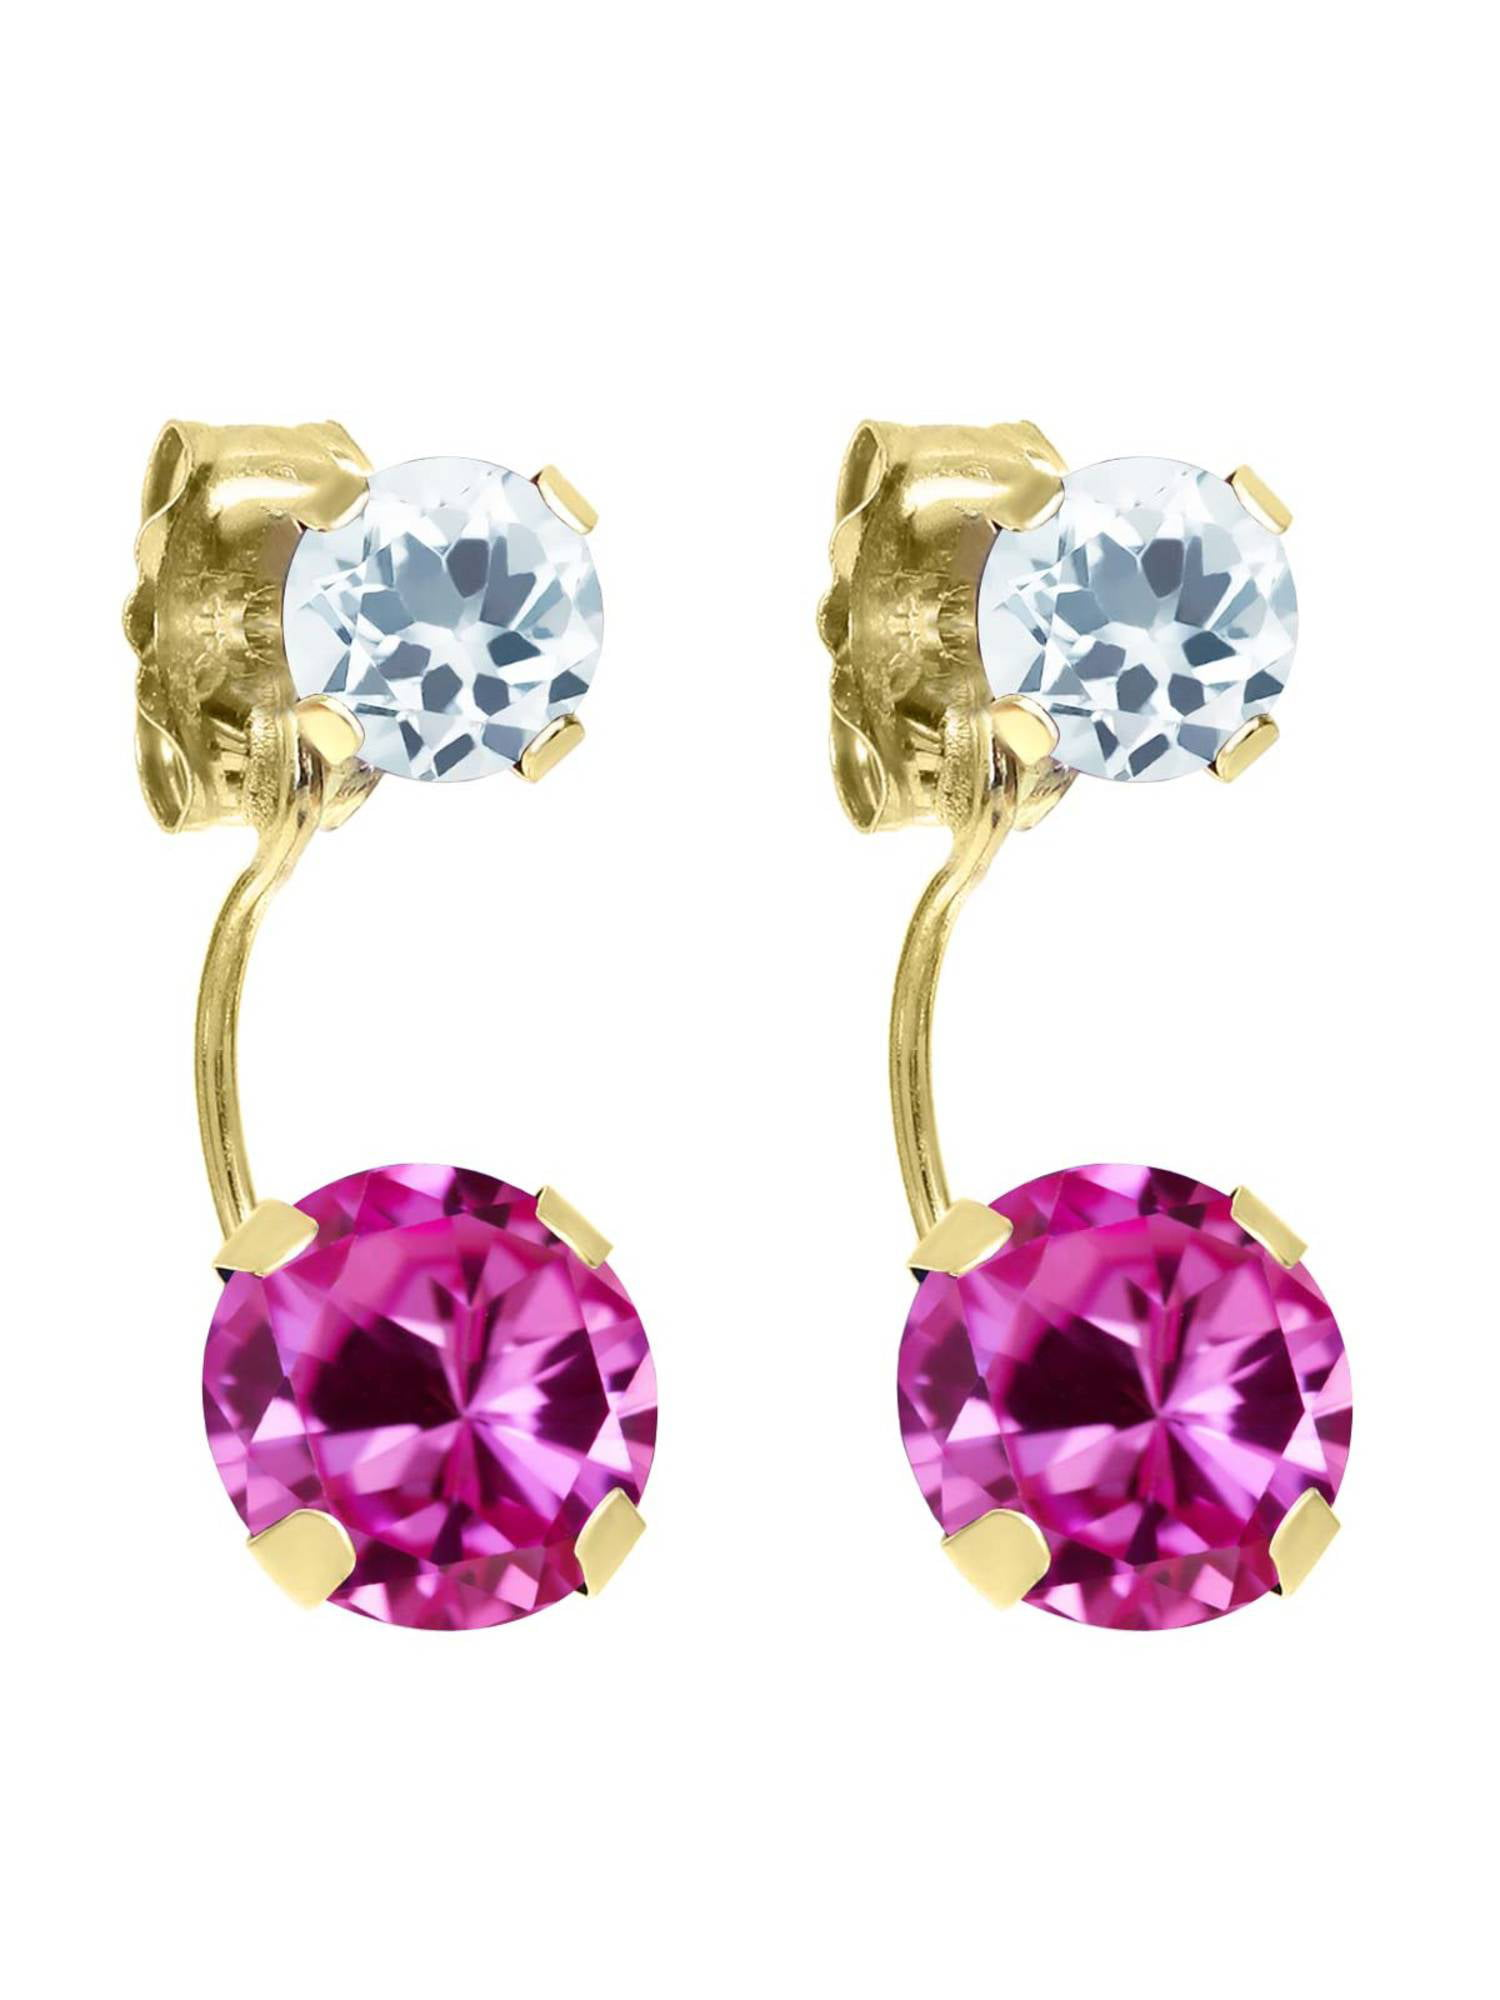 2.44 Ct Round Pink Created Sapphire Sky Blue Aquamarine 14K Yellow Gold Earrings by